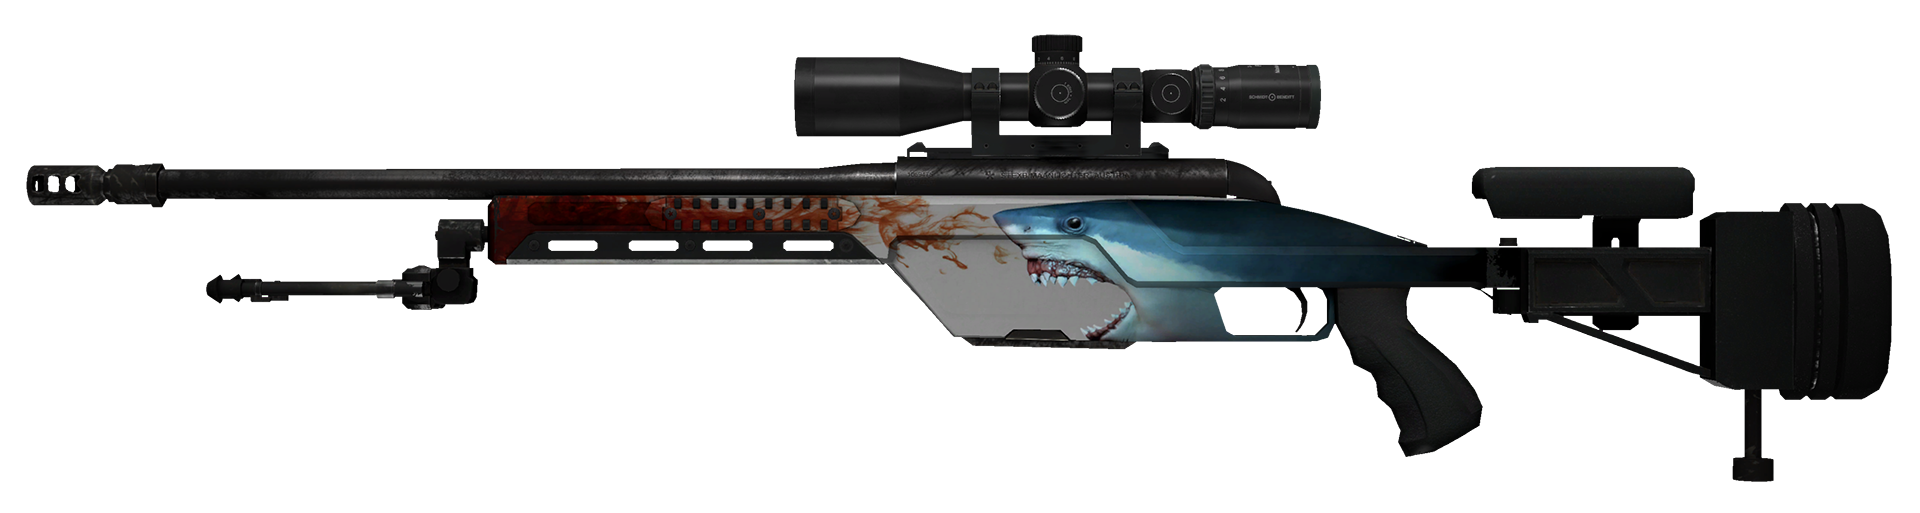 SSG 08 Blood in the Water Large Rendering